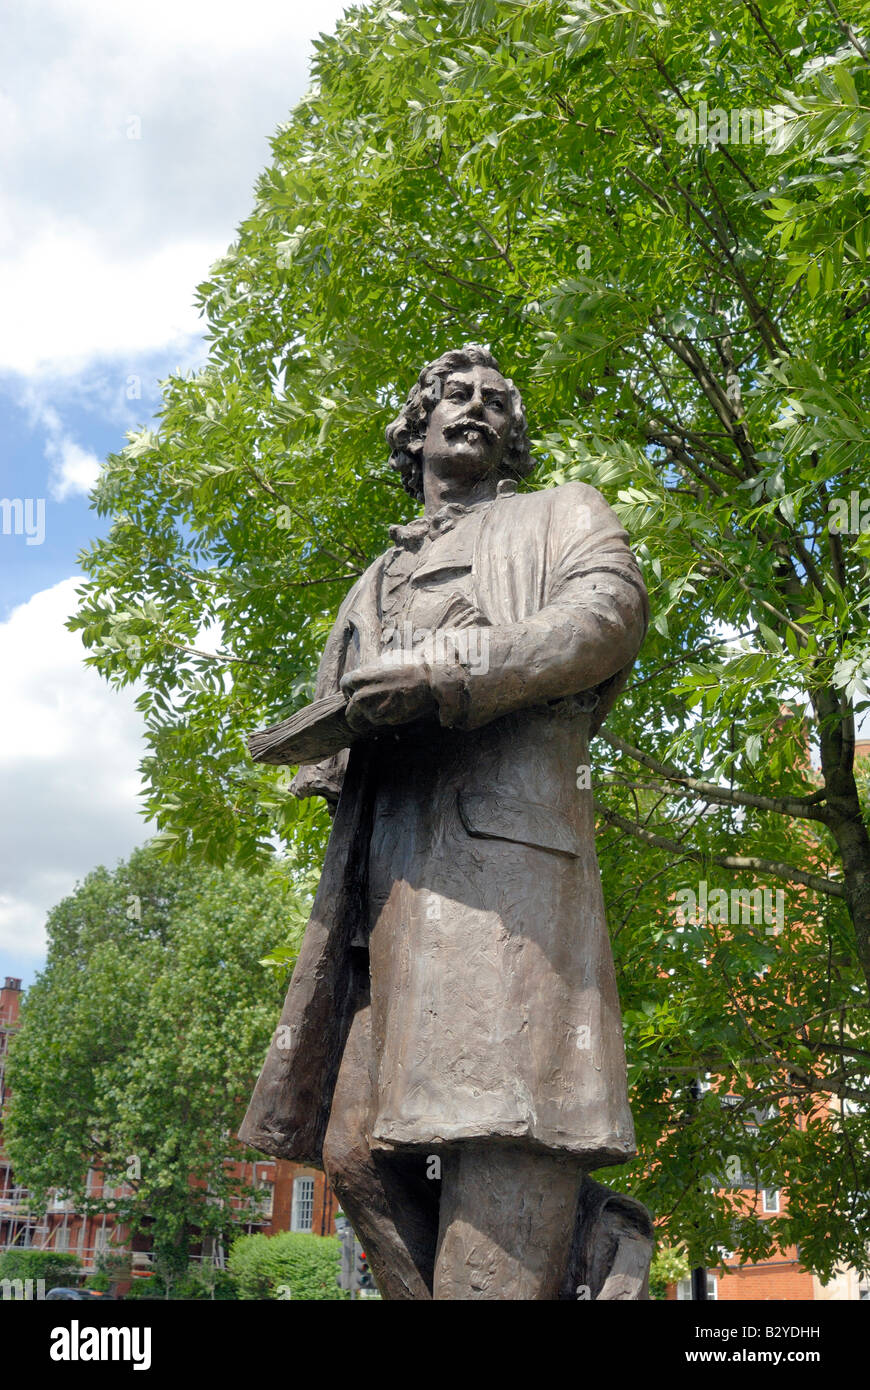 Statue of James McNeill Whistler, Chelsea, London - Stock Image